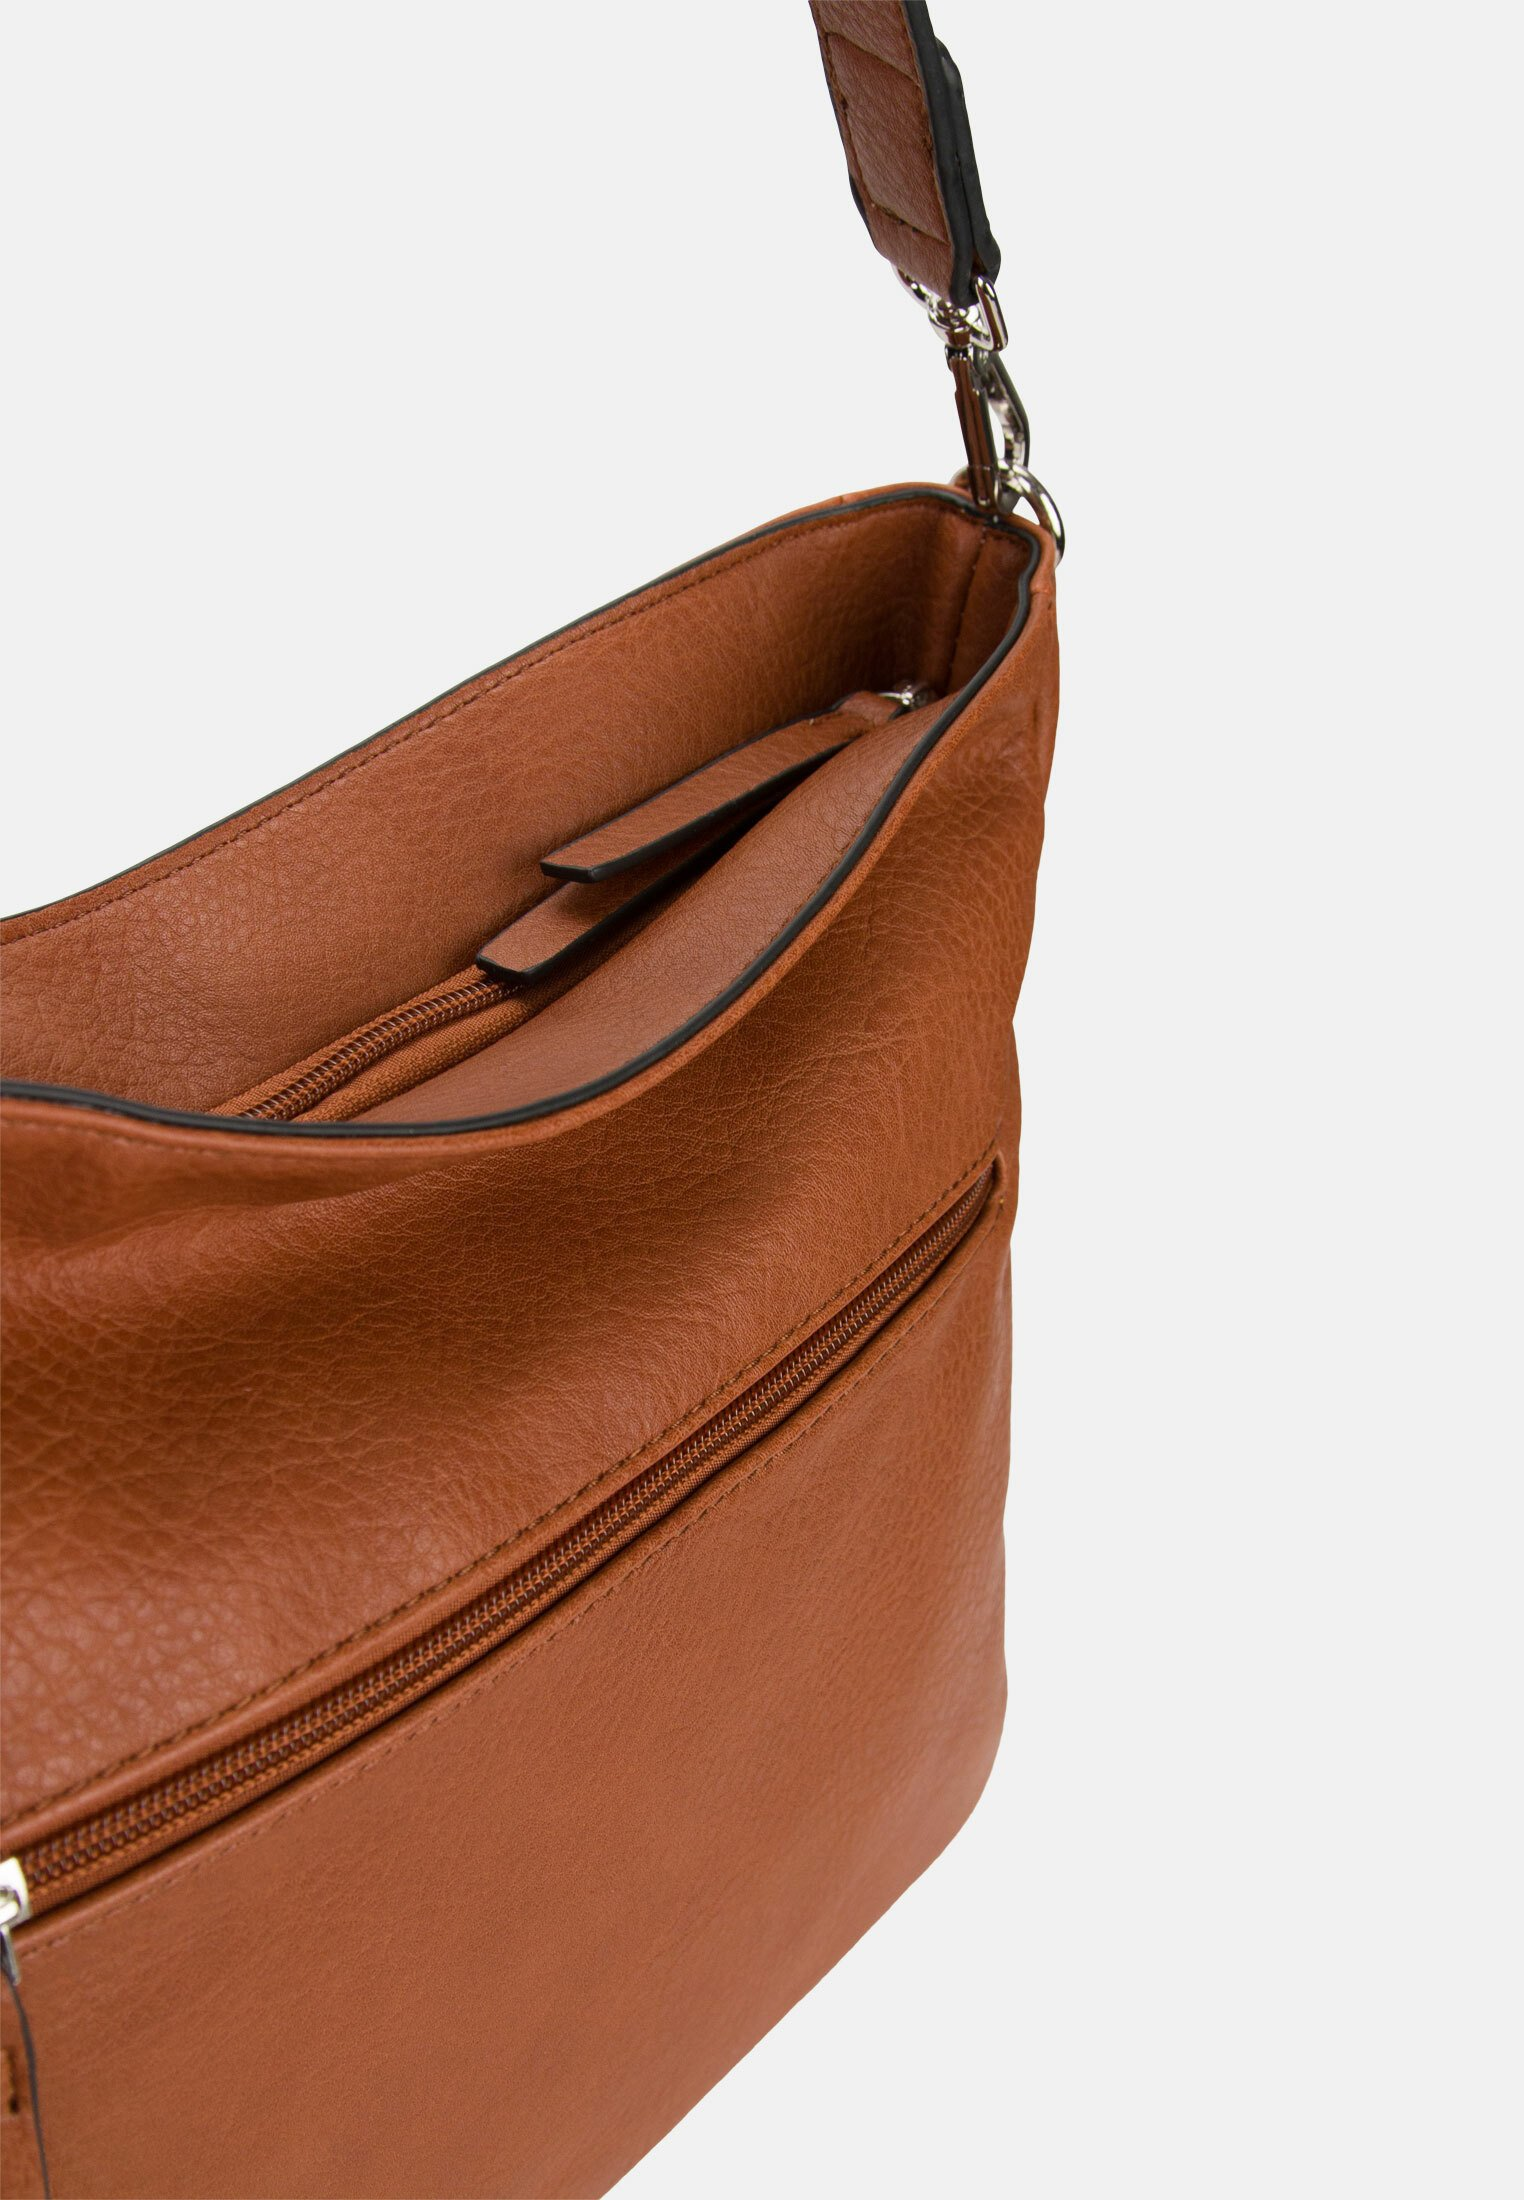 Online Latest Collections Accessories Tamaris ADELE Handbag cognac mKIY3mAdC vlF2NfmkH